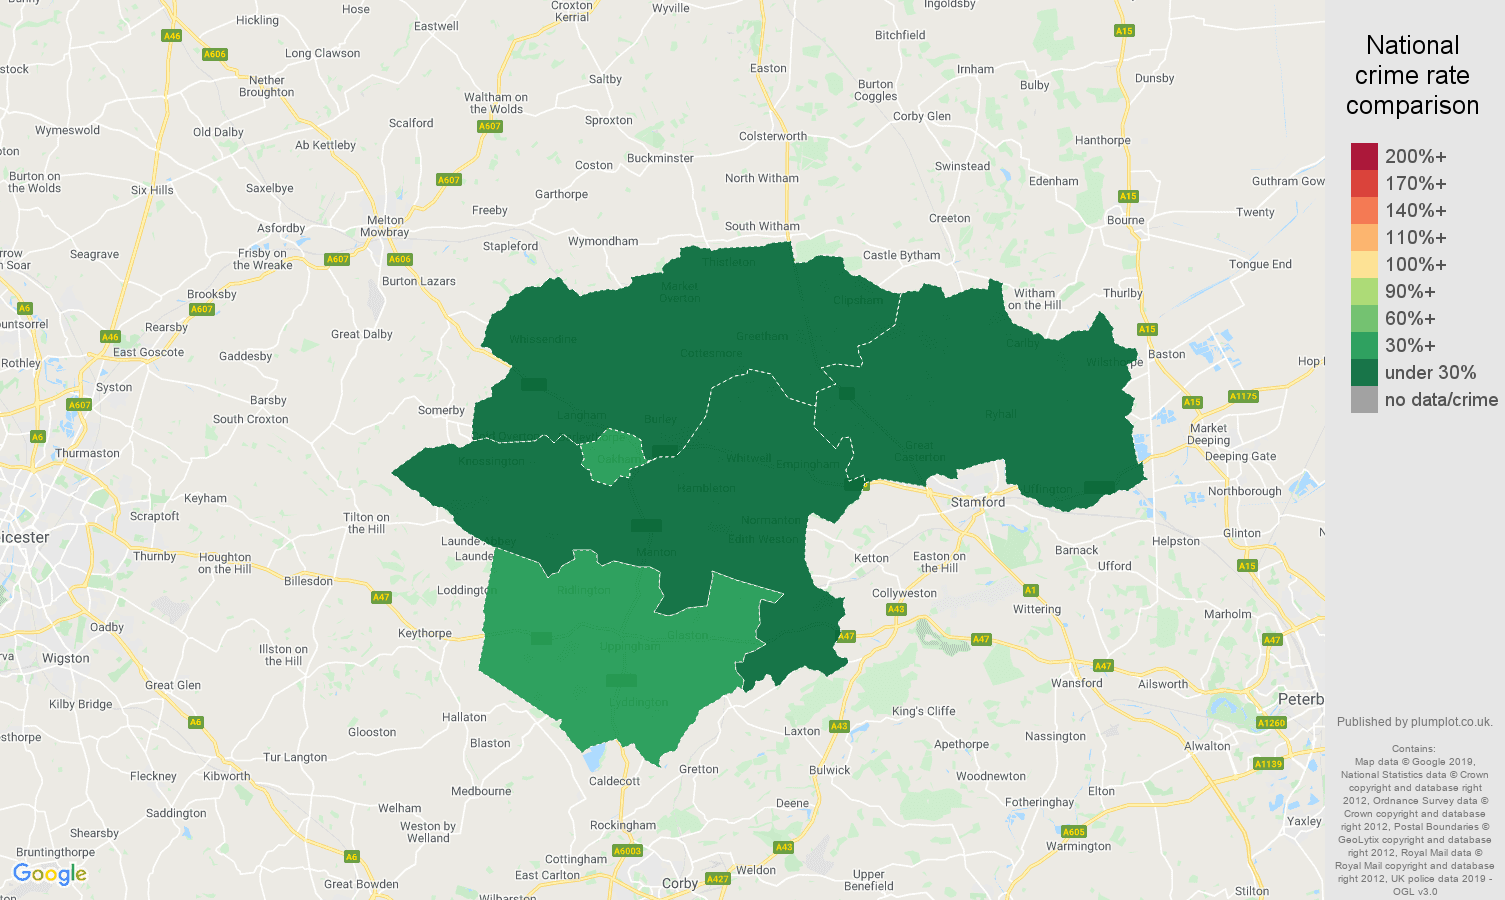 Rutland public order crime rate comparison map